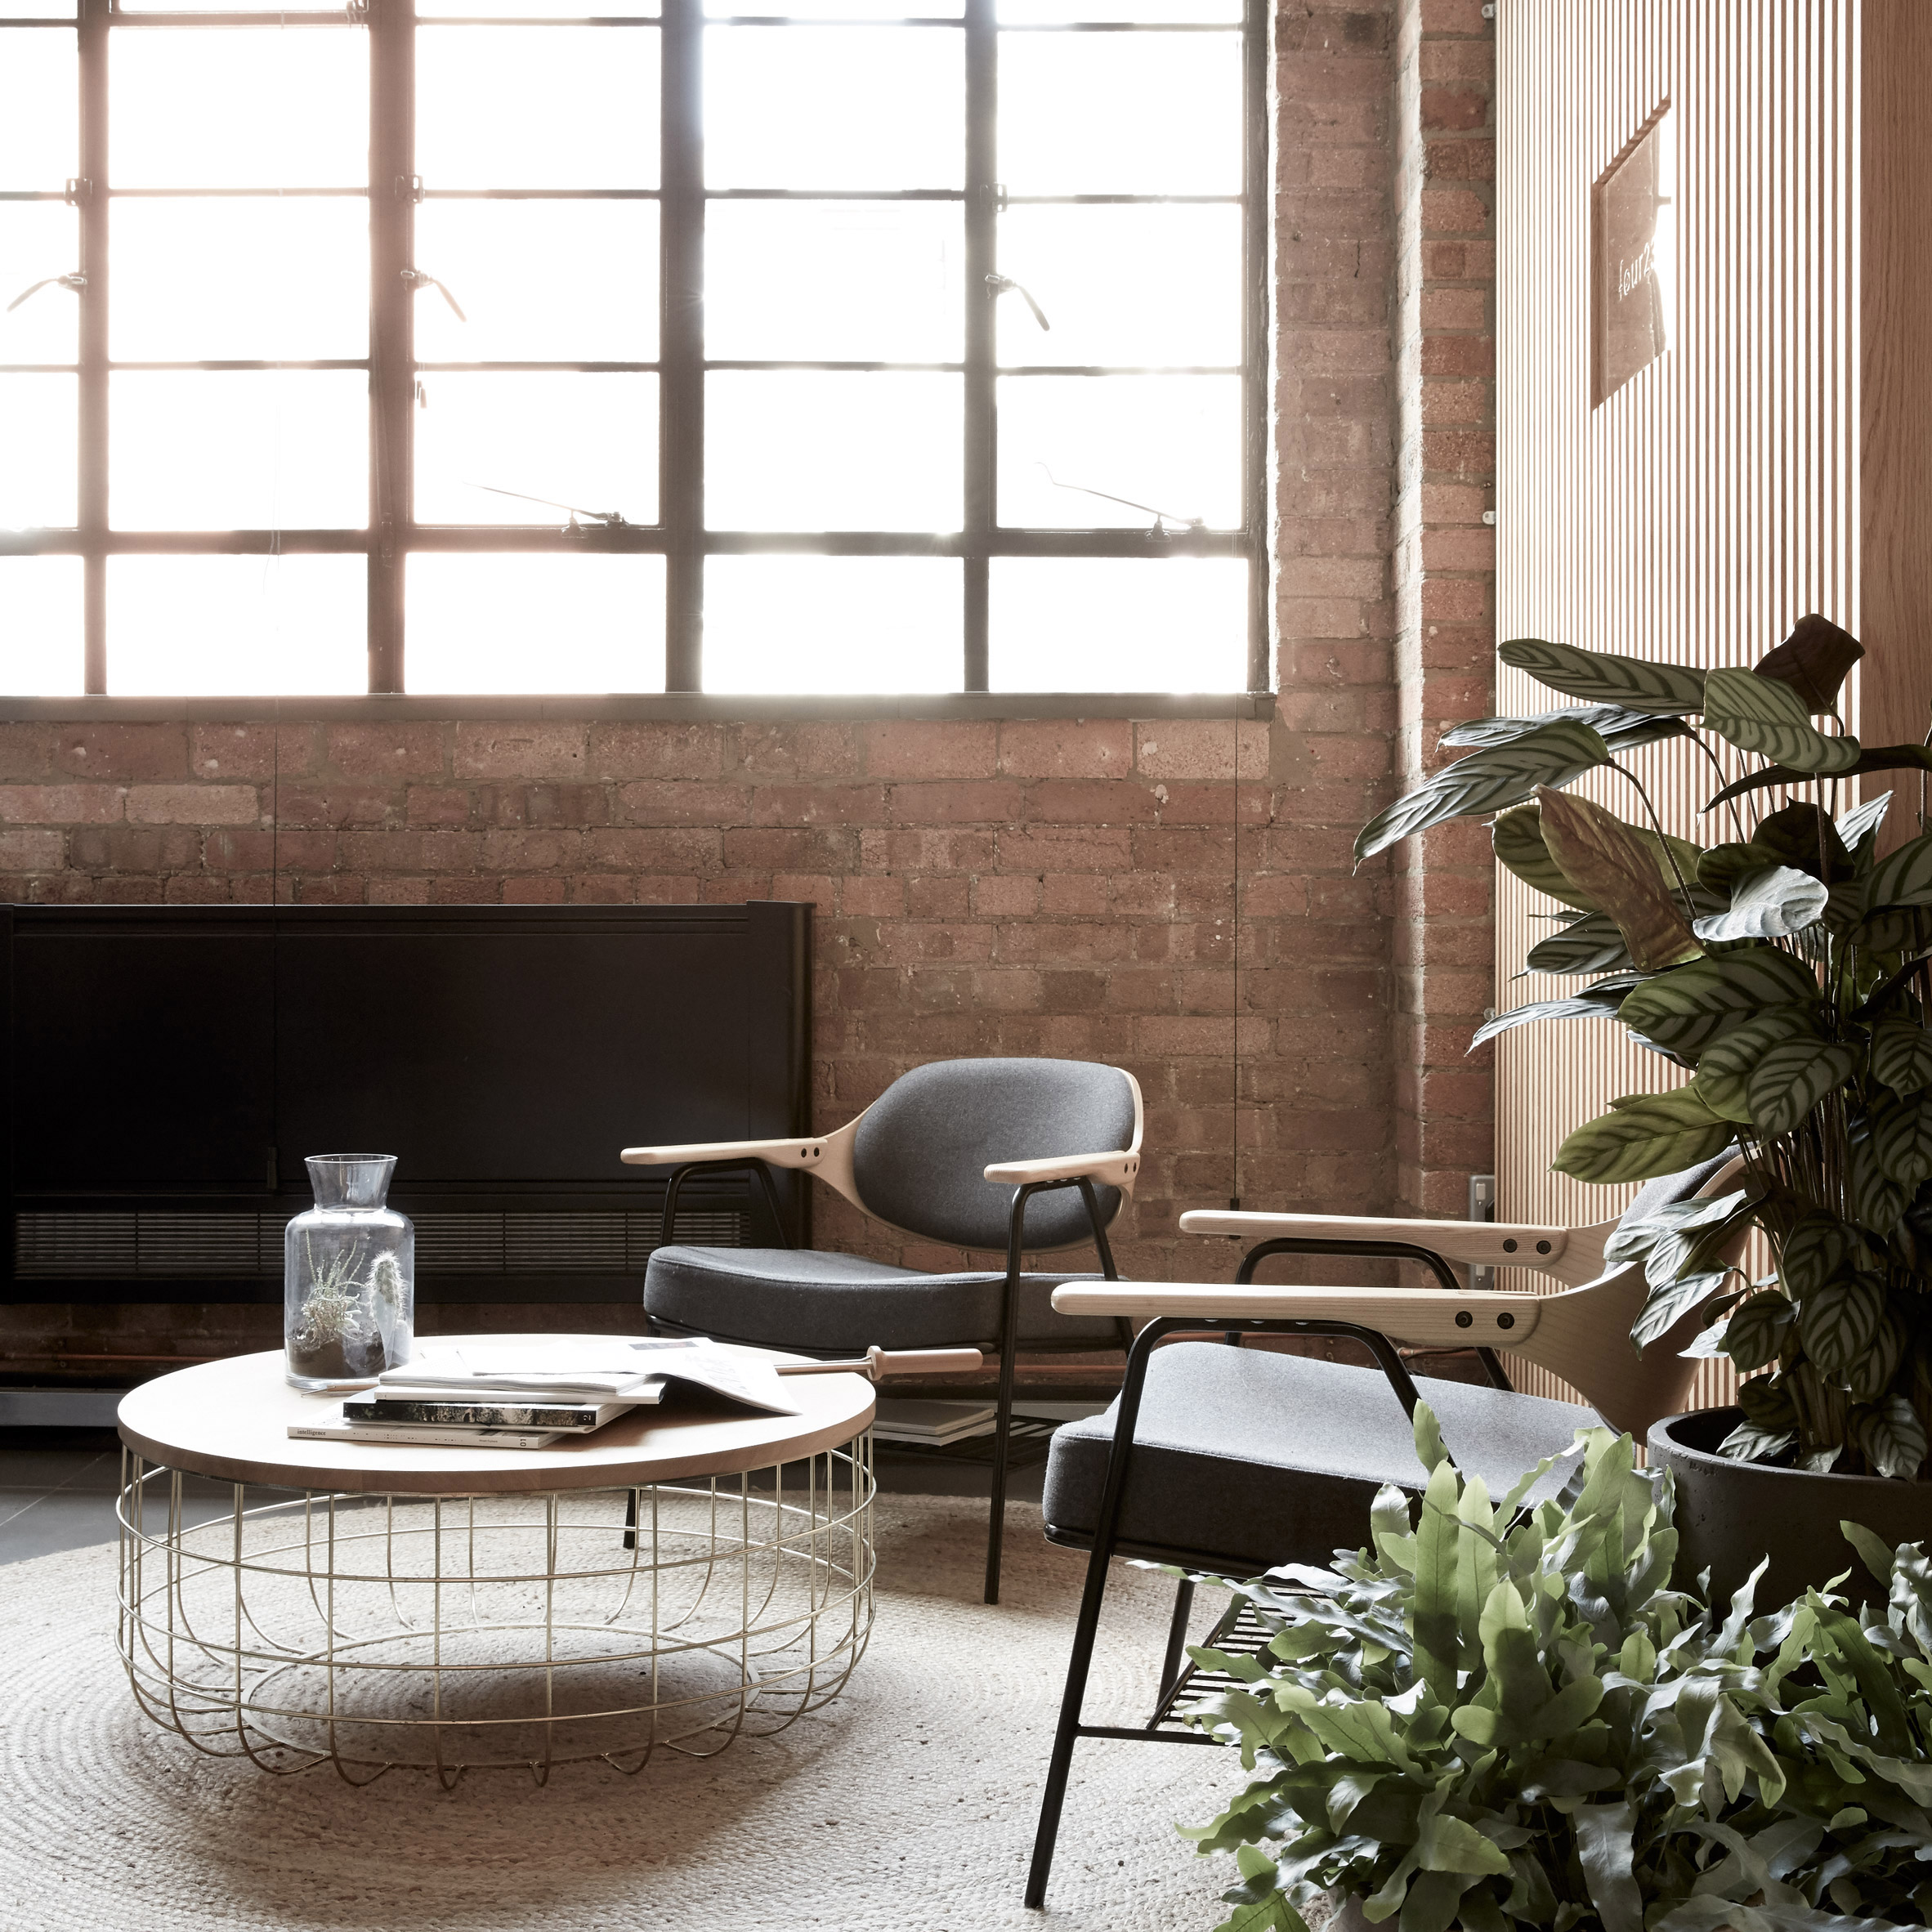 Swell Office Interior Architecture And Design Dezeen Largest Home Design Picture Inspirations Pitcheantrous